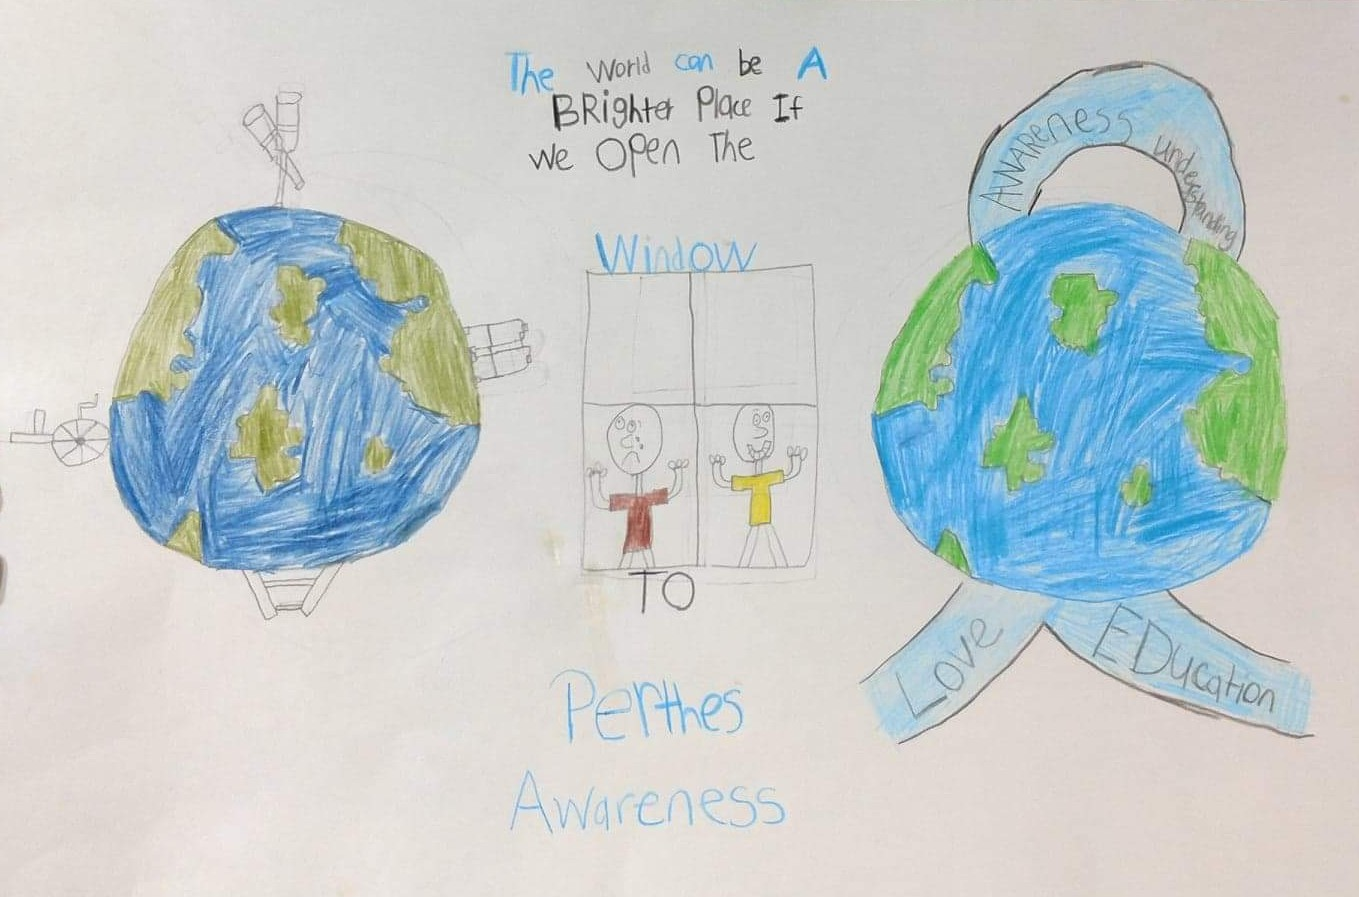 011 - WINDOW by Gavin Evans (age 11) in Paris, Tennessee, USA